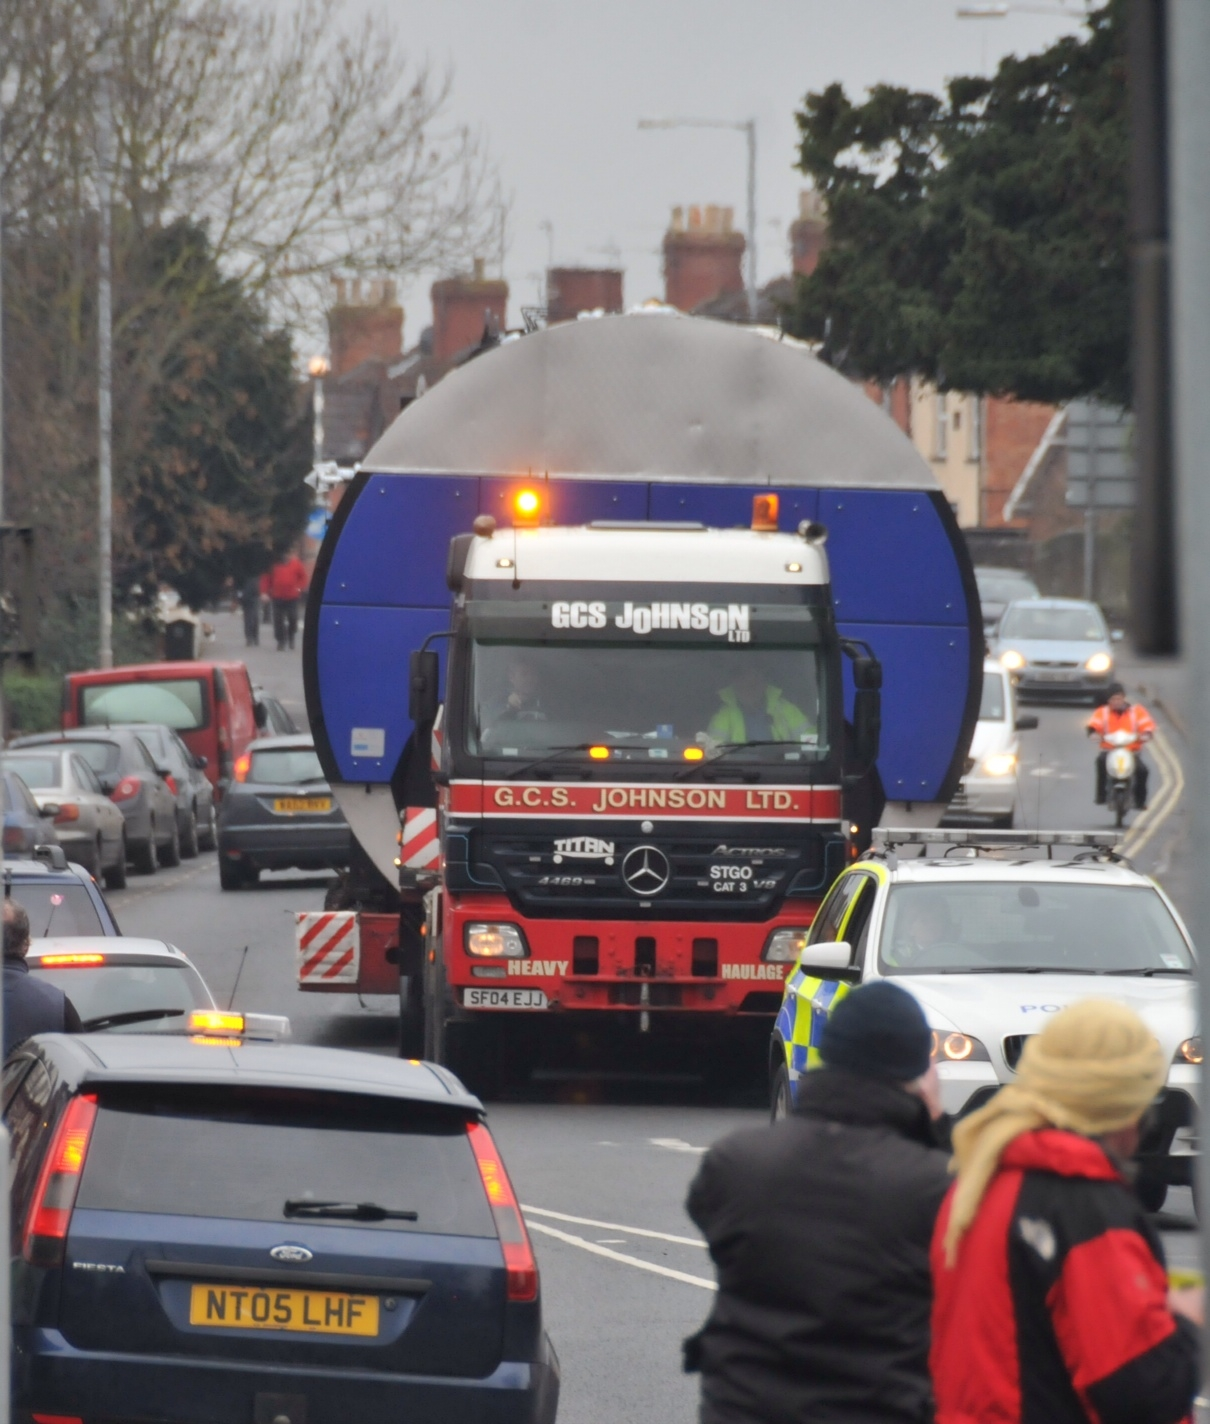 Slow going on roads as huge load transported through Bridgwater to Watchet